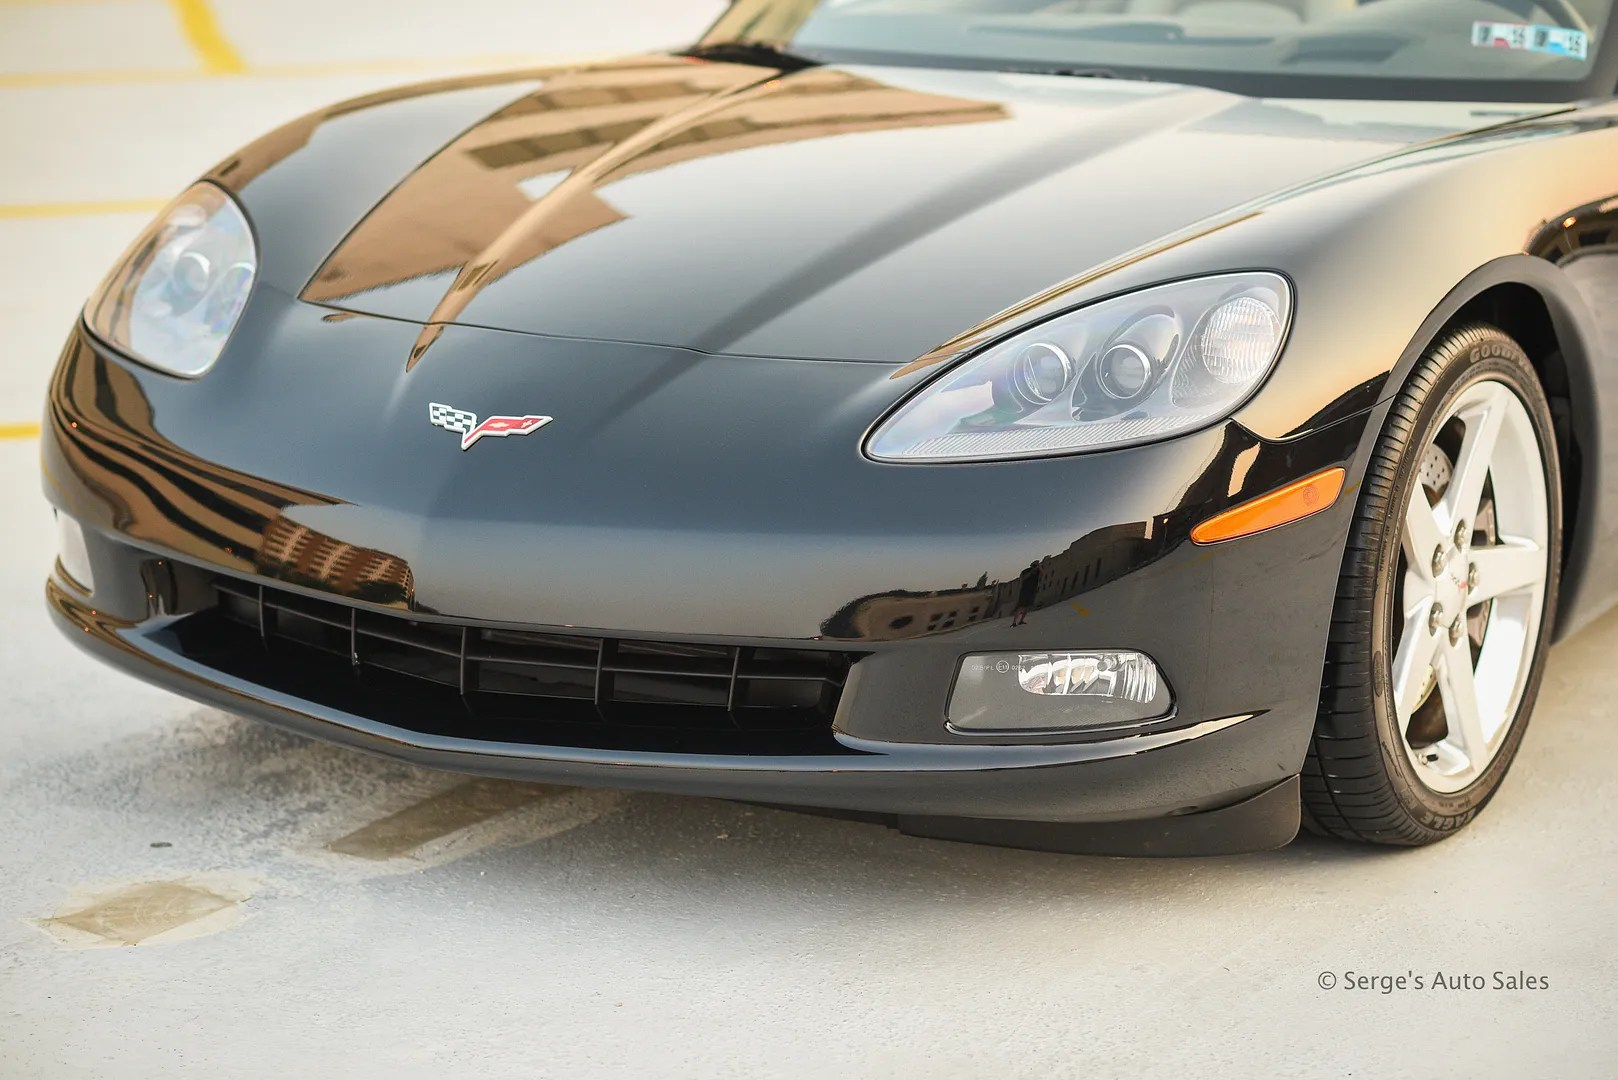 photo 2005-C6-Corvette-Convertible-For-Sale-Scranton-Serges-Auto-Sales-dealer--33_zps3d4wcugw.jpg